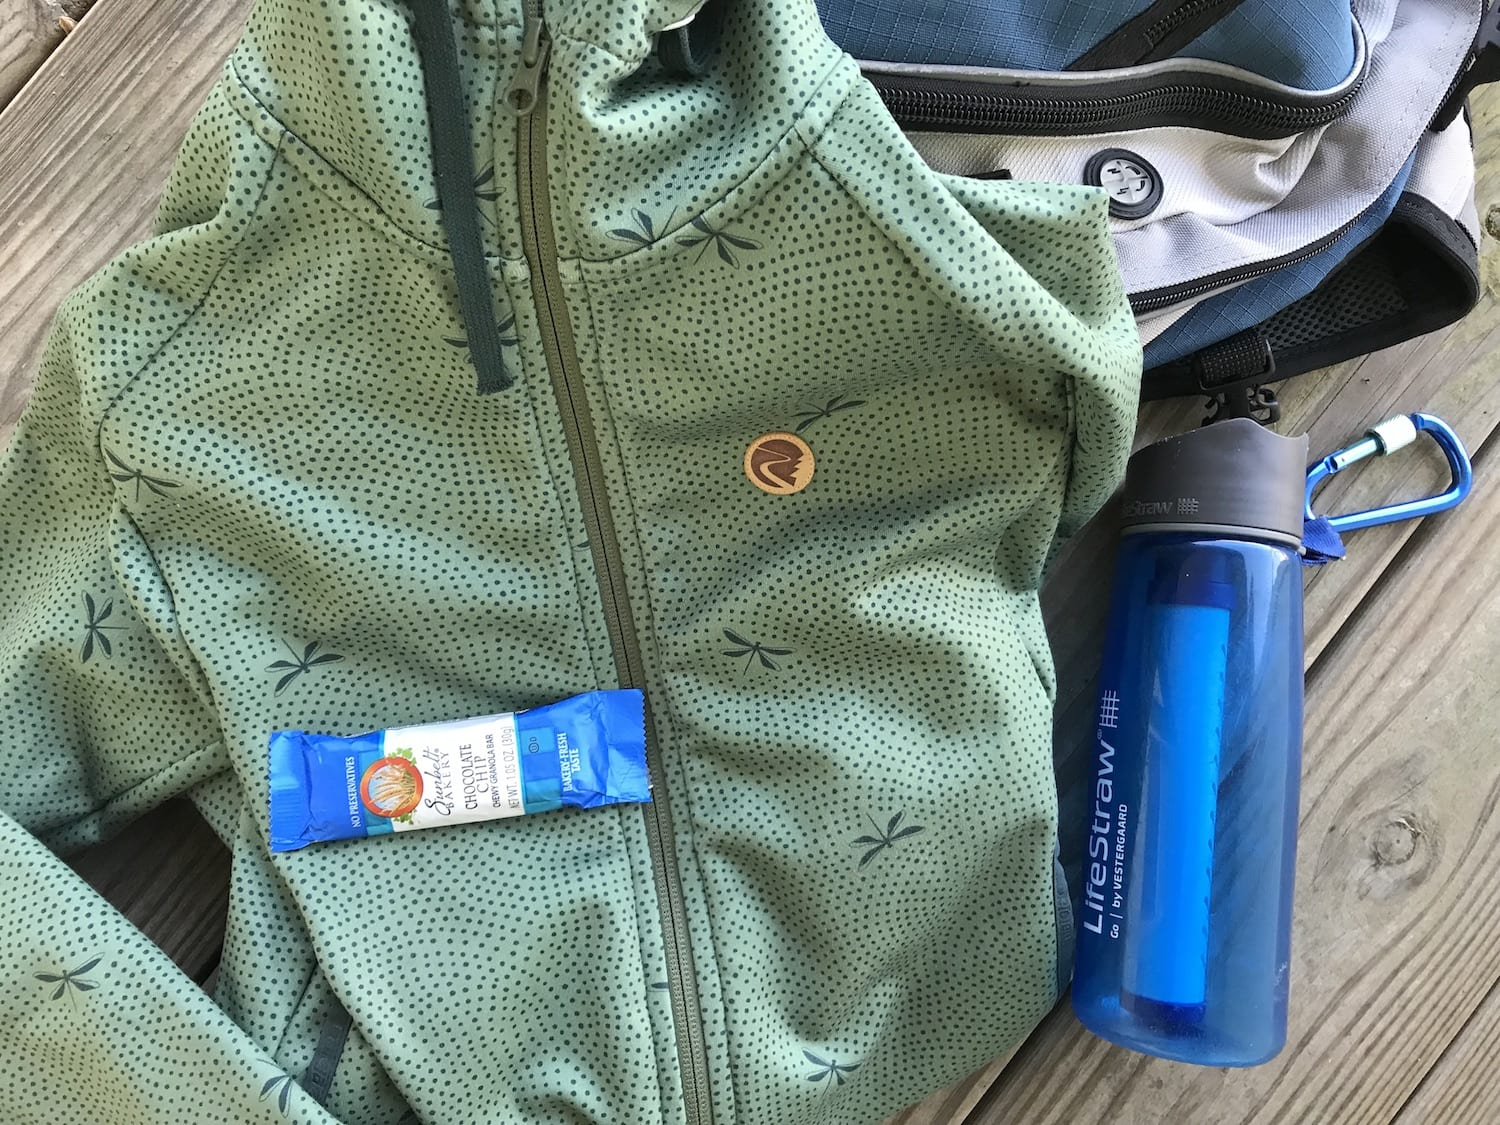 Hiking gear with Lifestraw